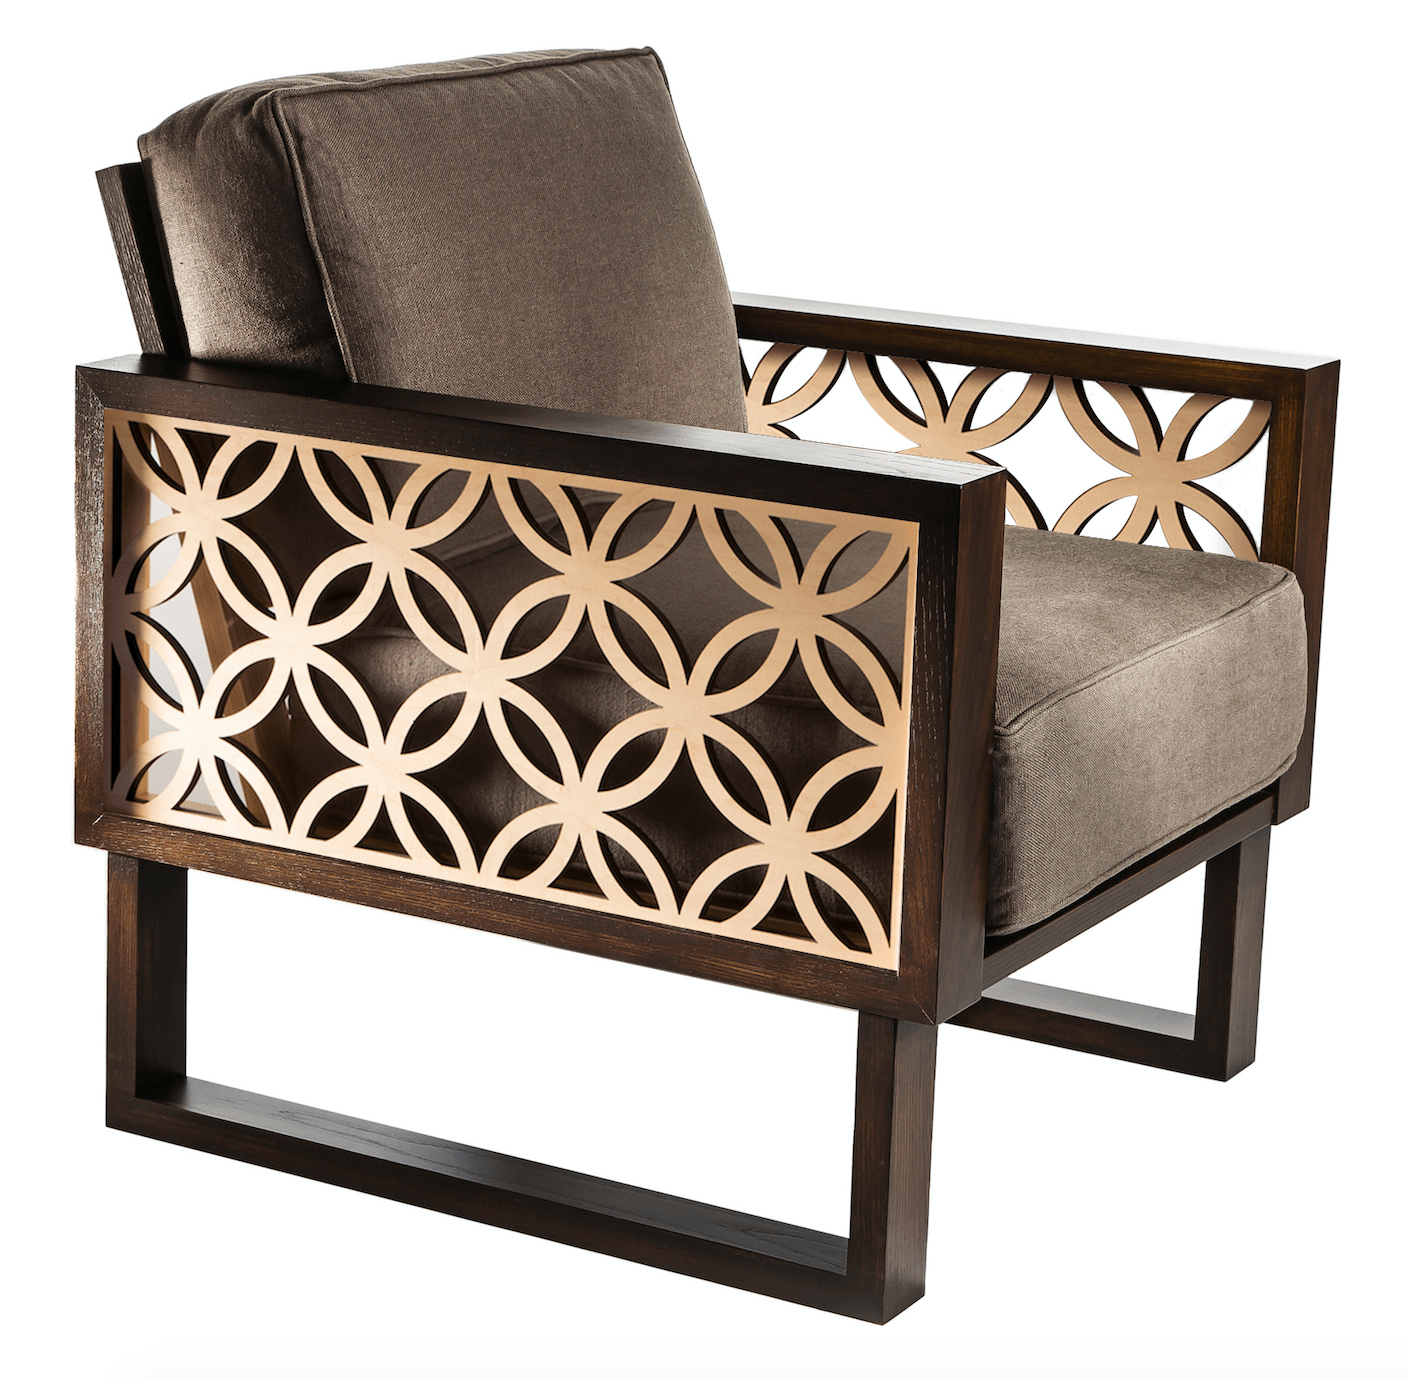 Interlaced Circle Lounge Chair - Twist Modern